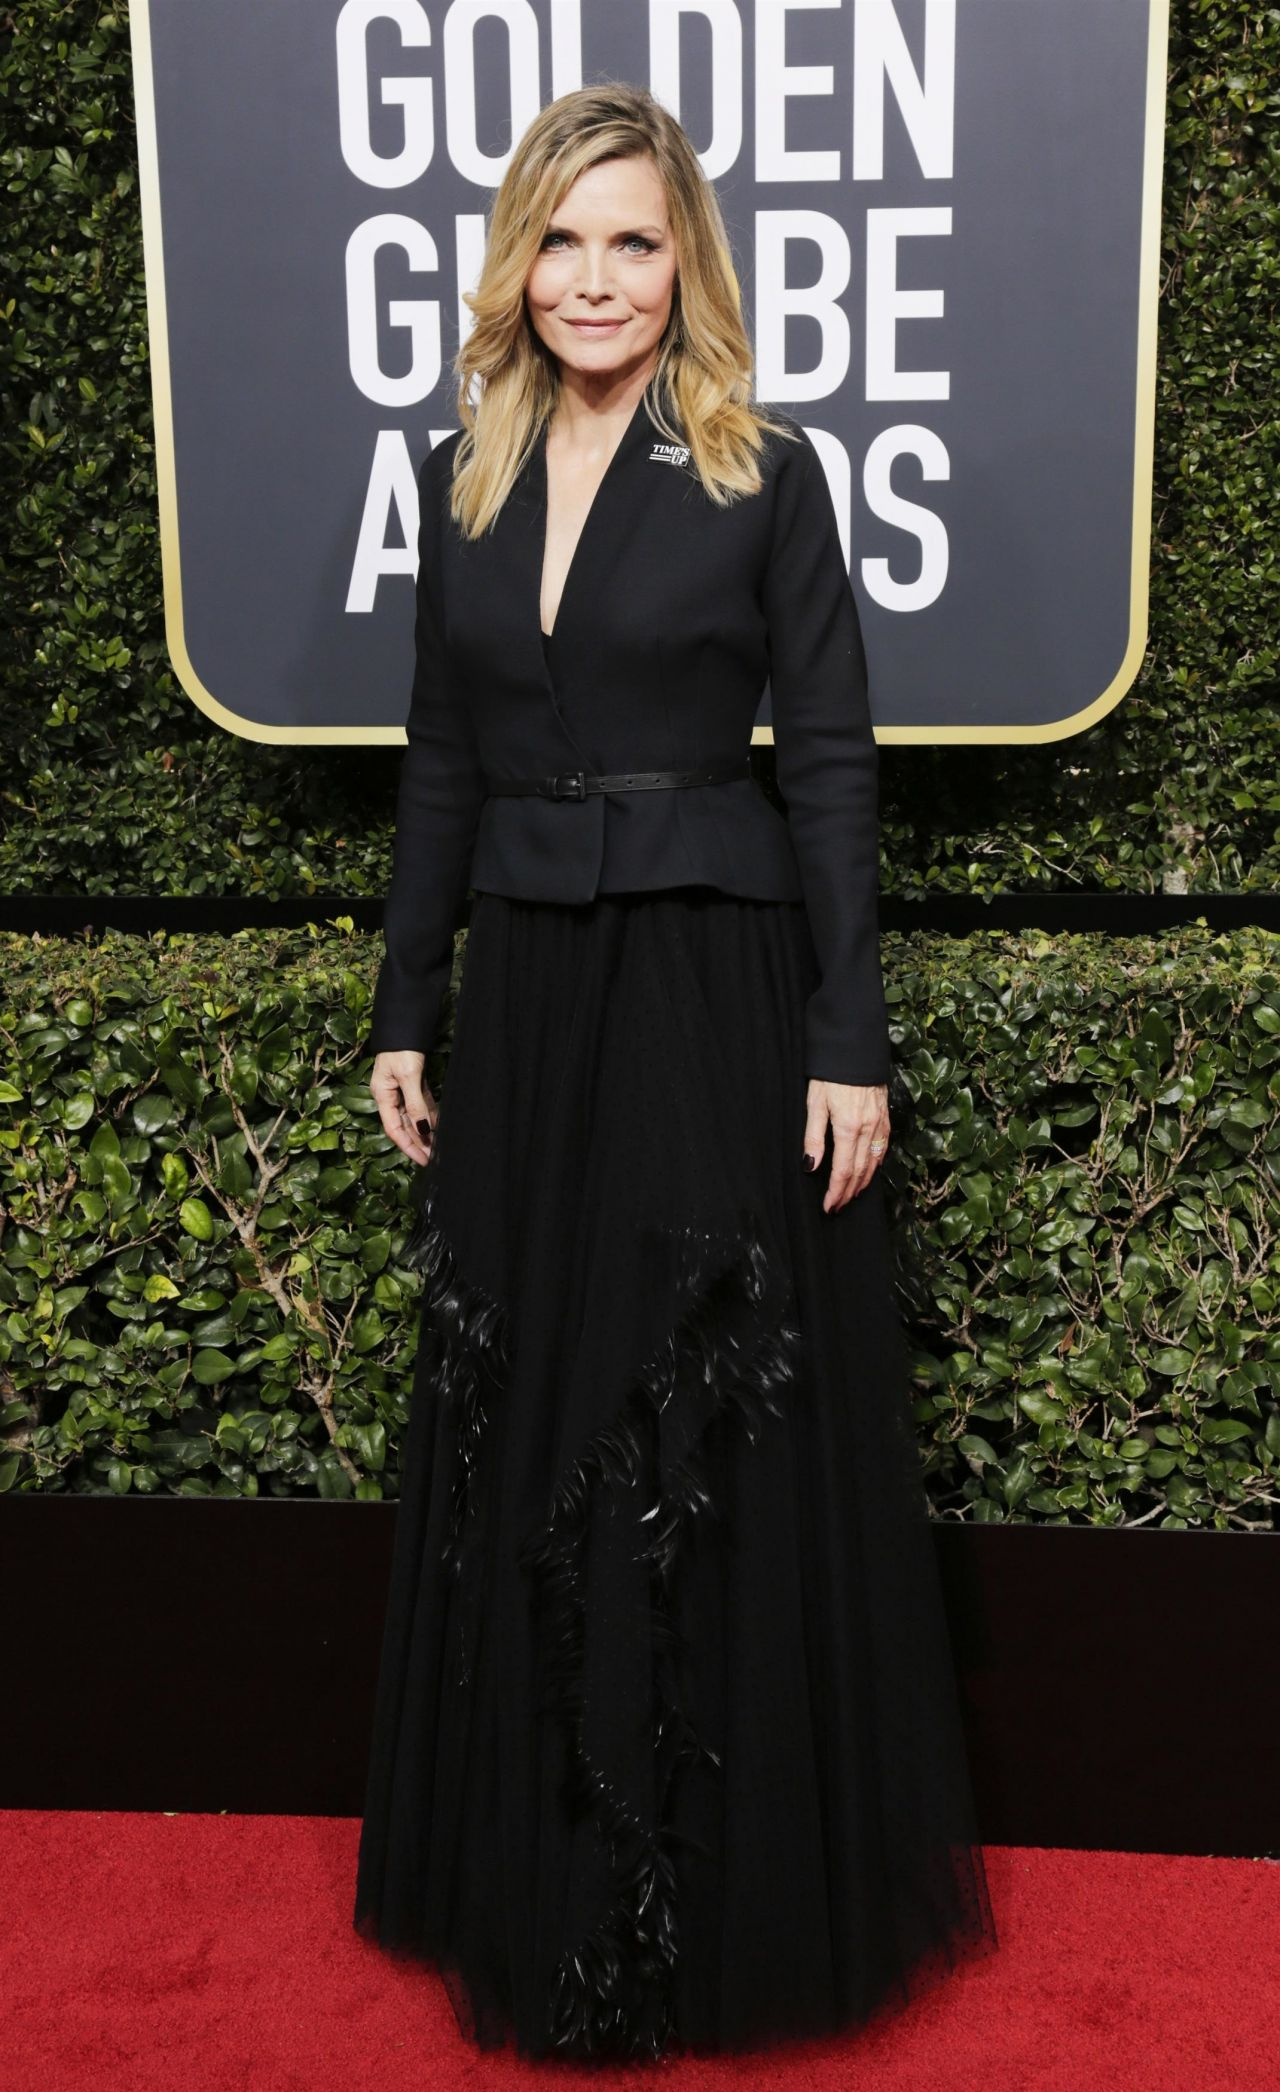 http://celebmafia.com/wp-content/uploads/2018/01/michelle-pfeiffer-golden-globe-awards-2018-5.jpg